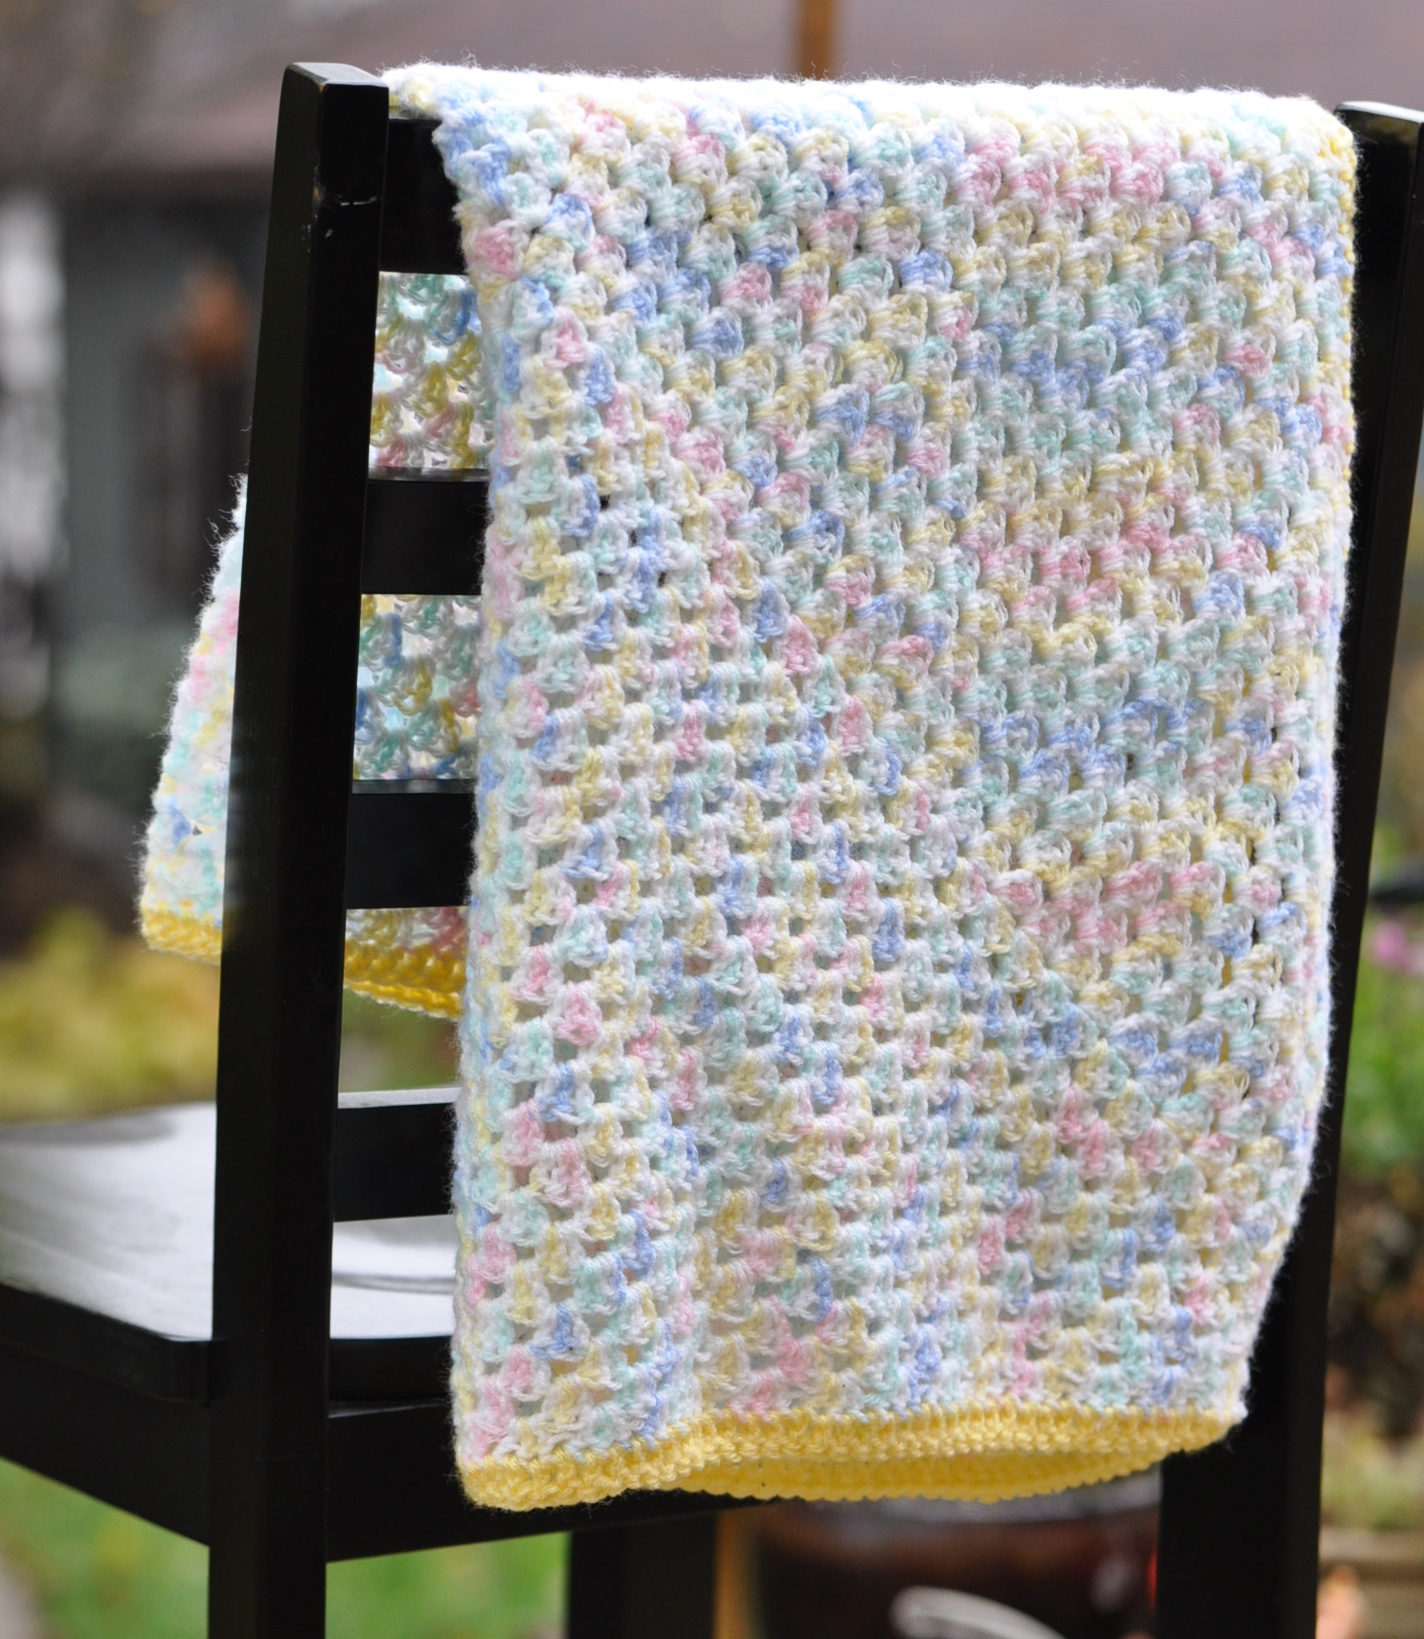 Crocheted Baby Blankets Crocheted Baby Blanket Yelllow Edge